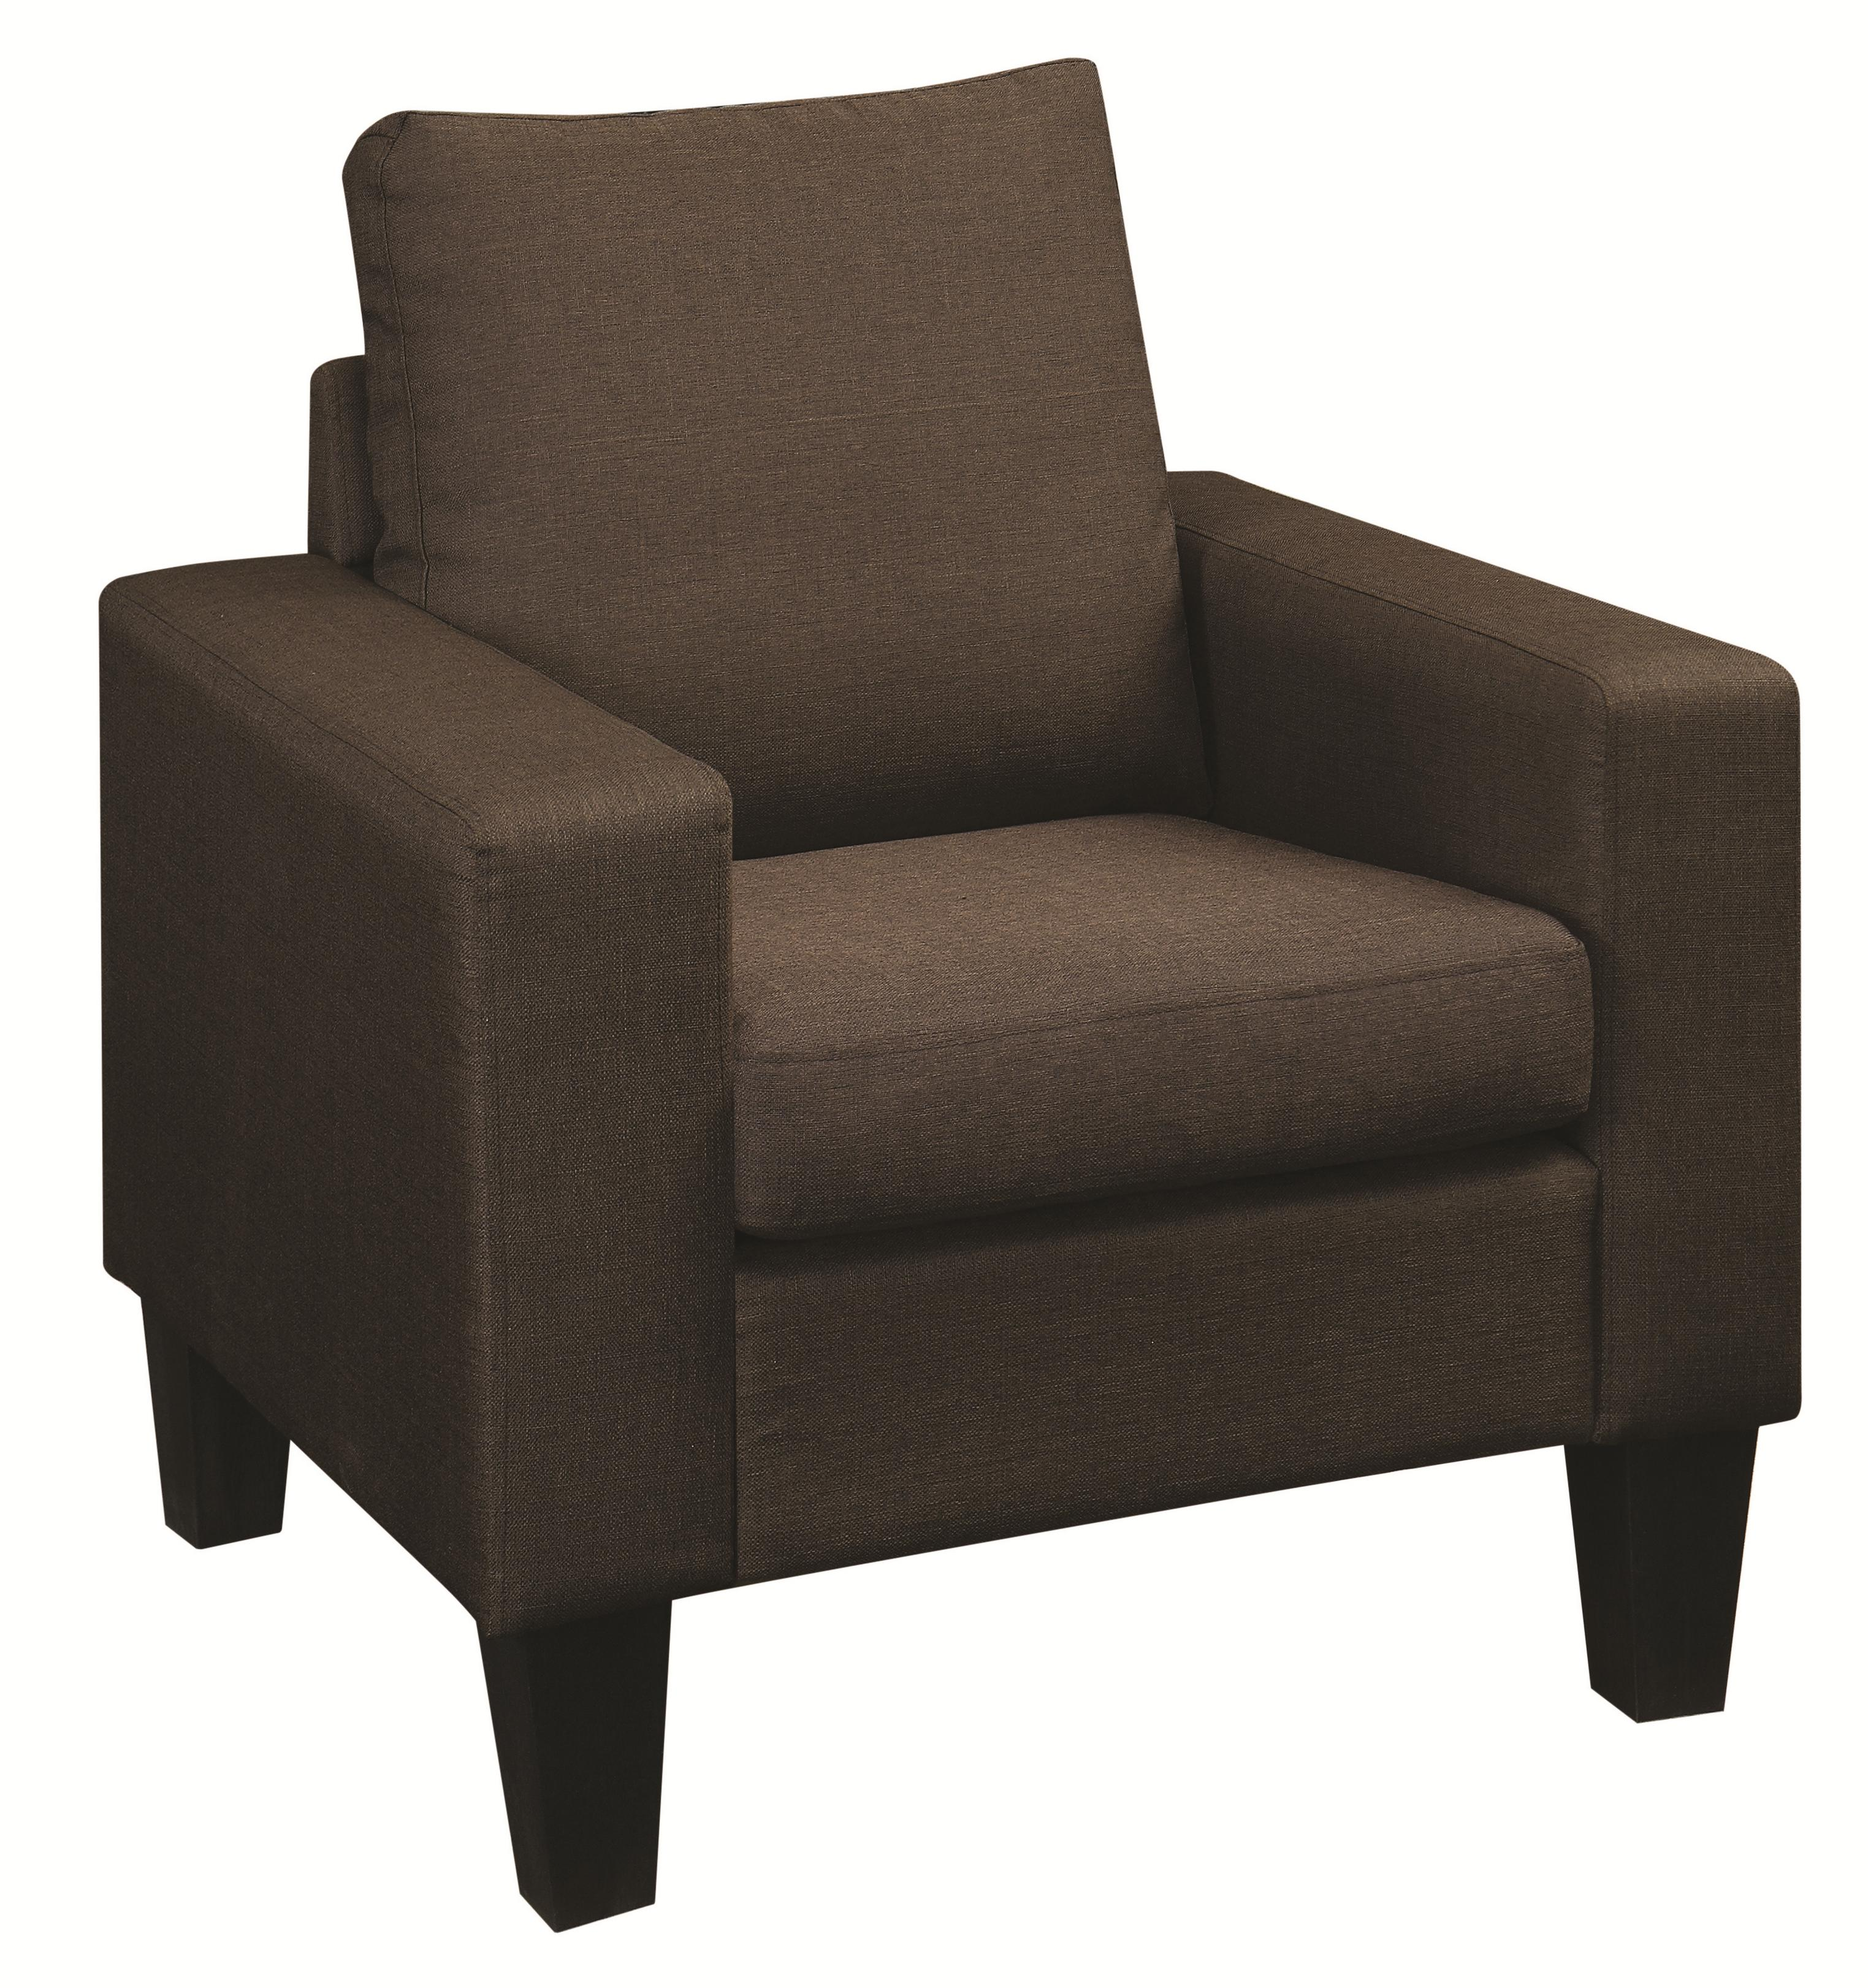 Coaster Bachman Upholstered Chair with Track Arms and